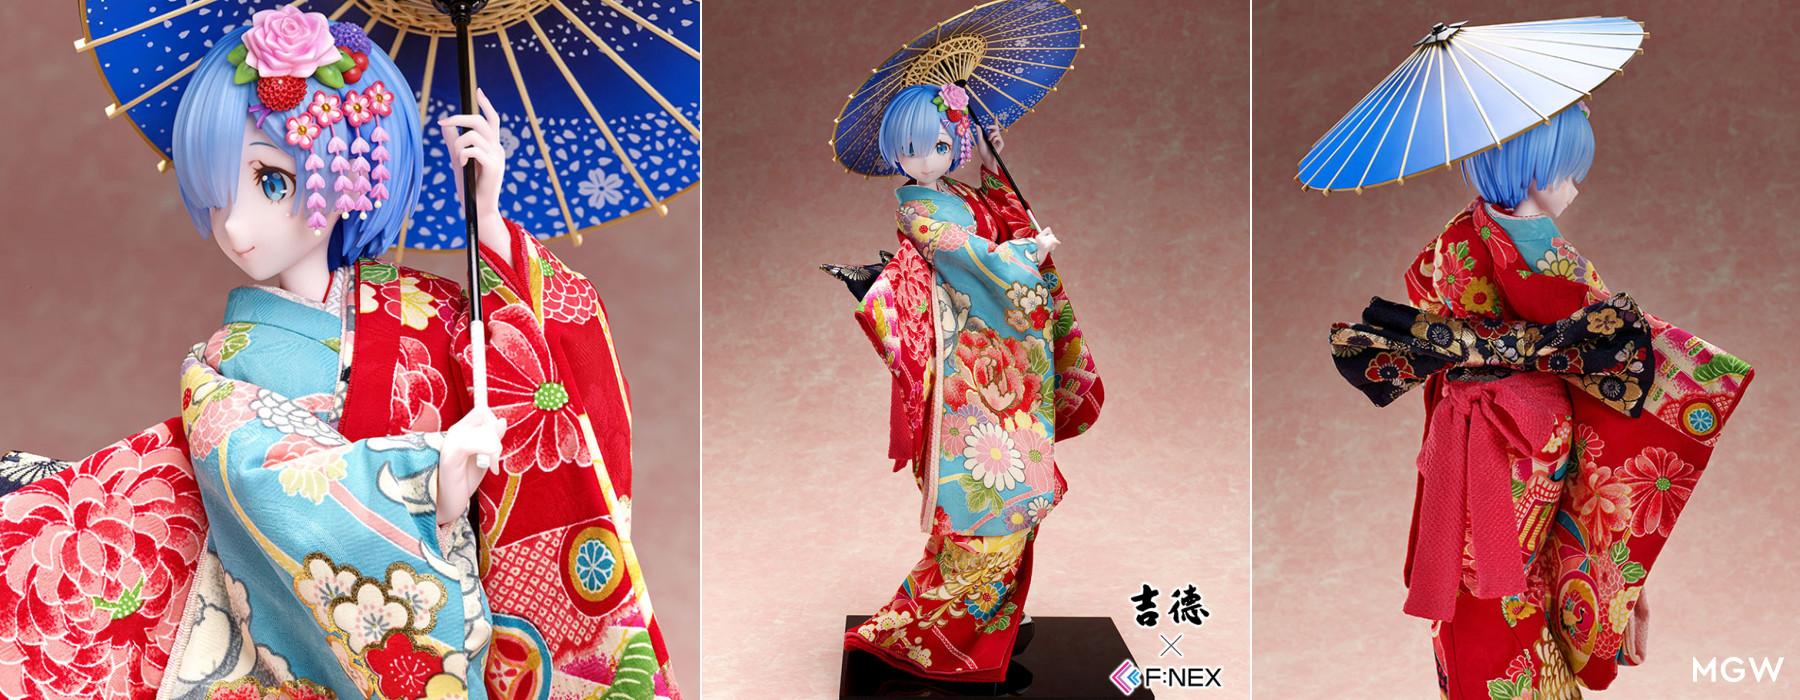 Yoshitoku x F:NEX Rem Japanese Doll from Re:ZERO -Starting Life in Another World-